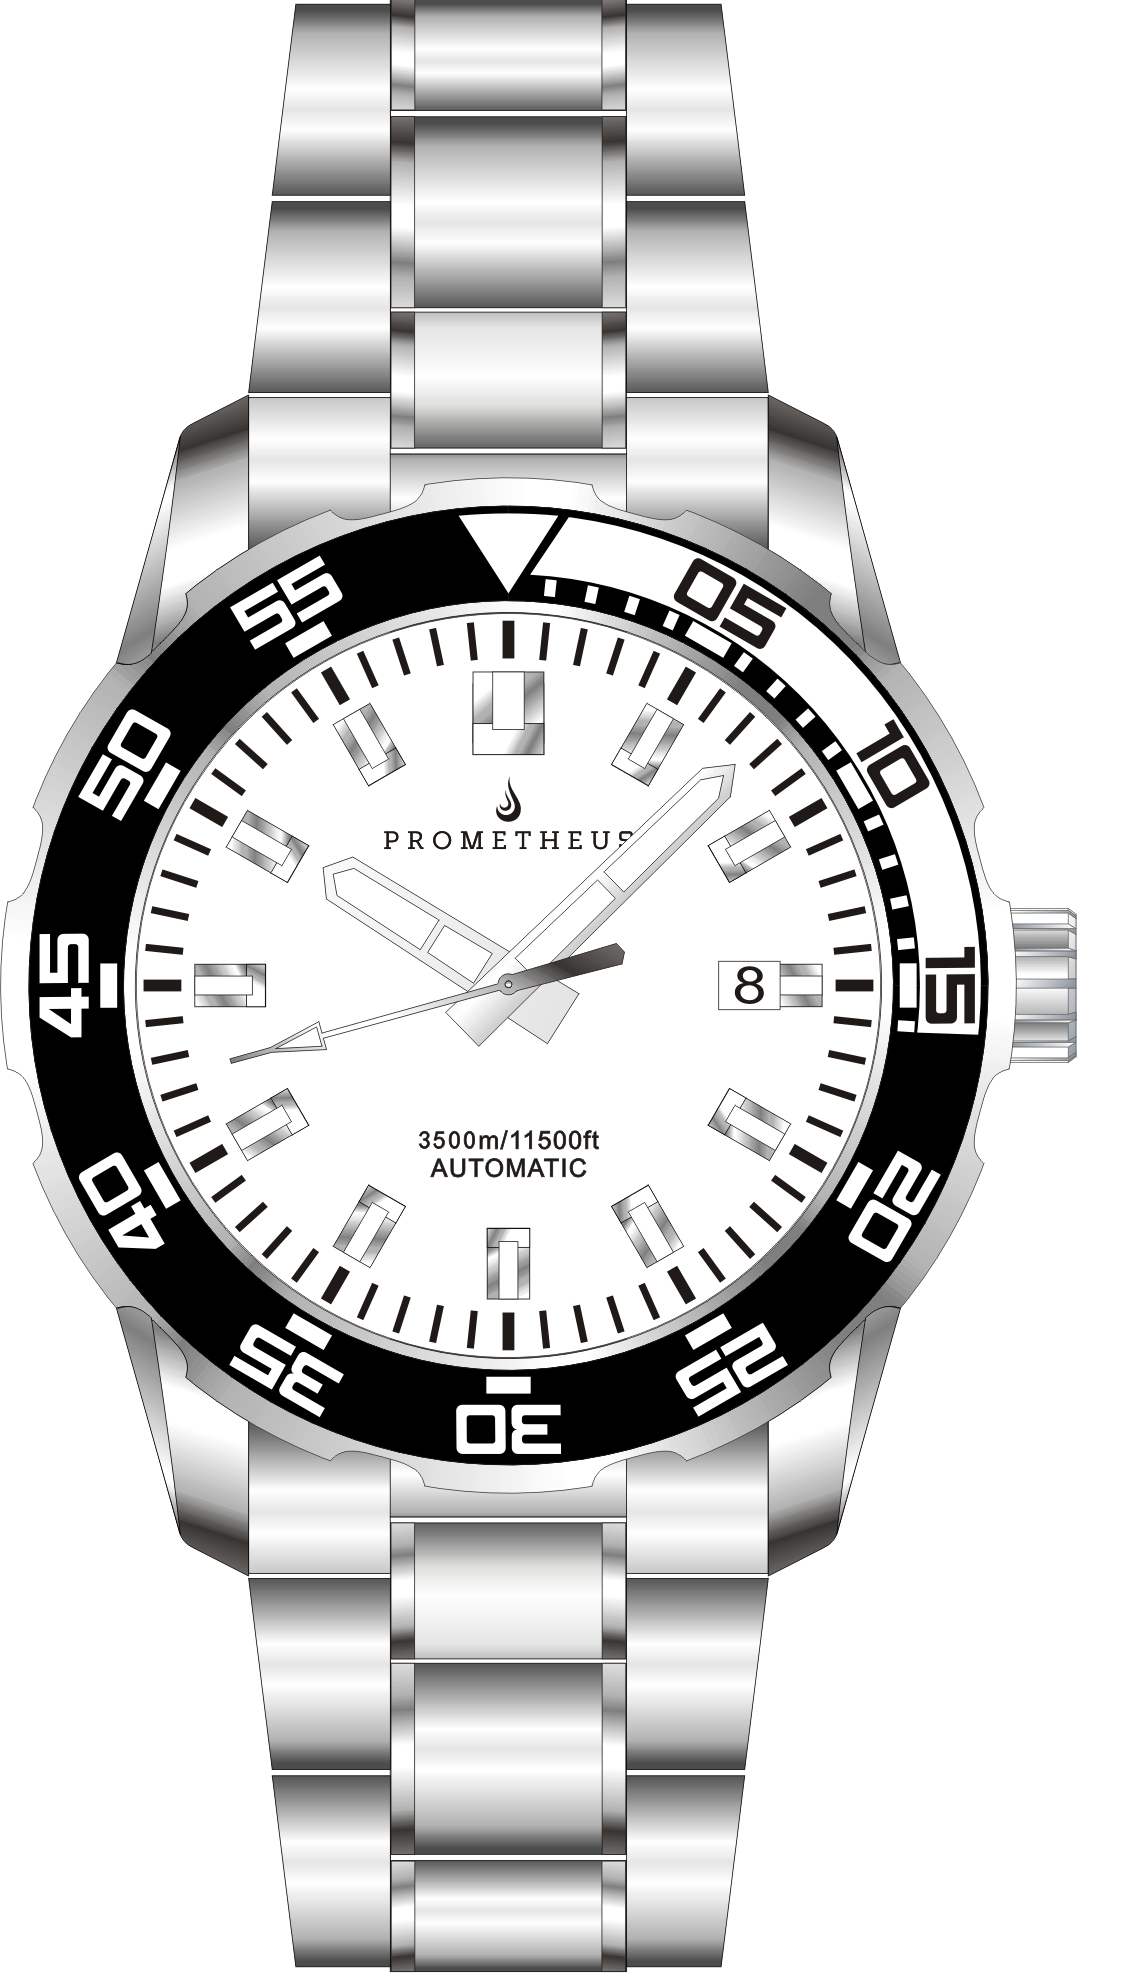 Prometheus Poseidon Stainless Steel White Bezel Lumed White Dial Pencil Hands 3500m Miyota 9015 Automatic Diver Watch PMTPWDPH